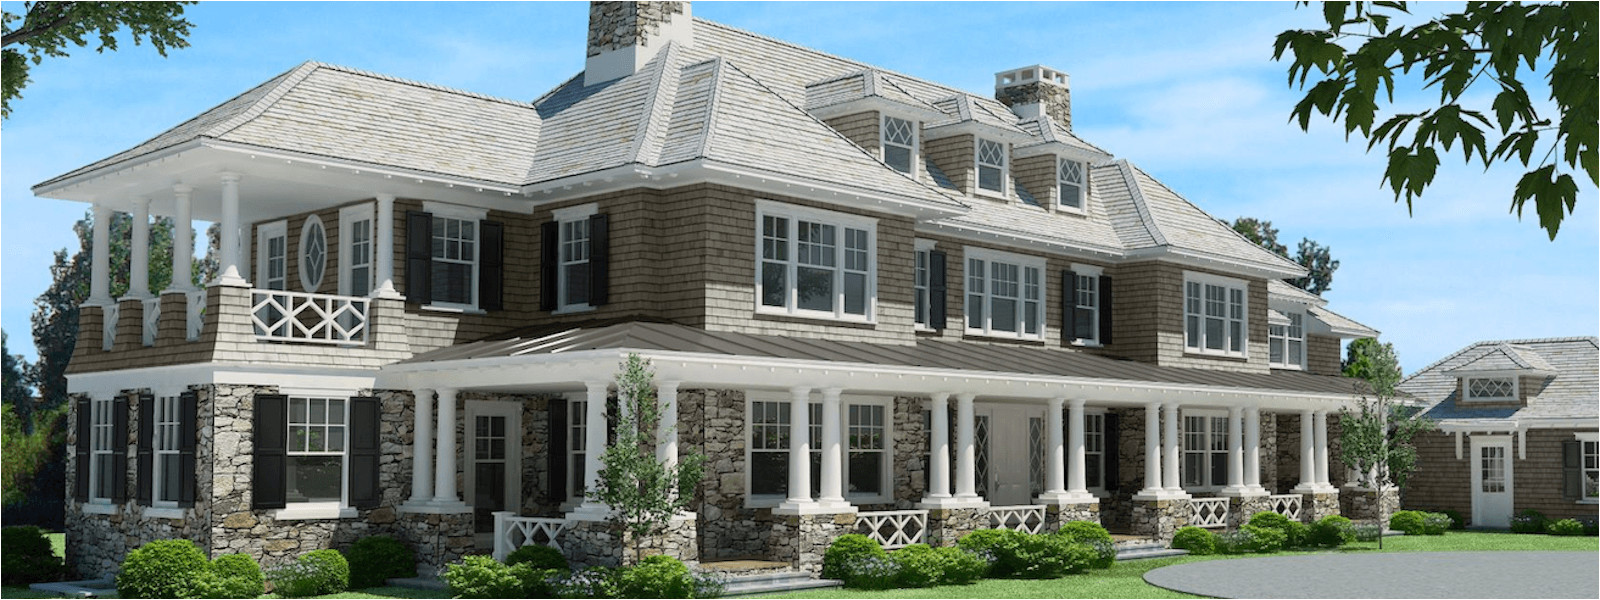 greenwich ct real estate agent michael teng keller williams luxury homes